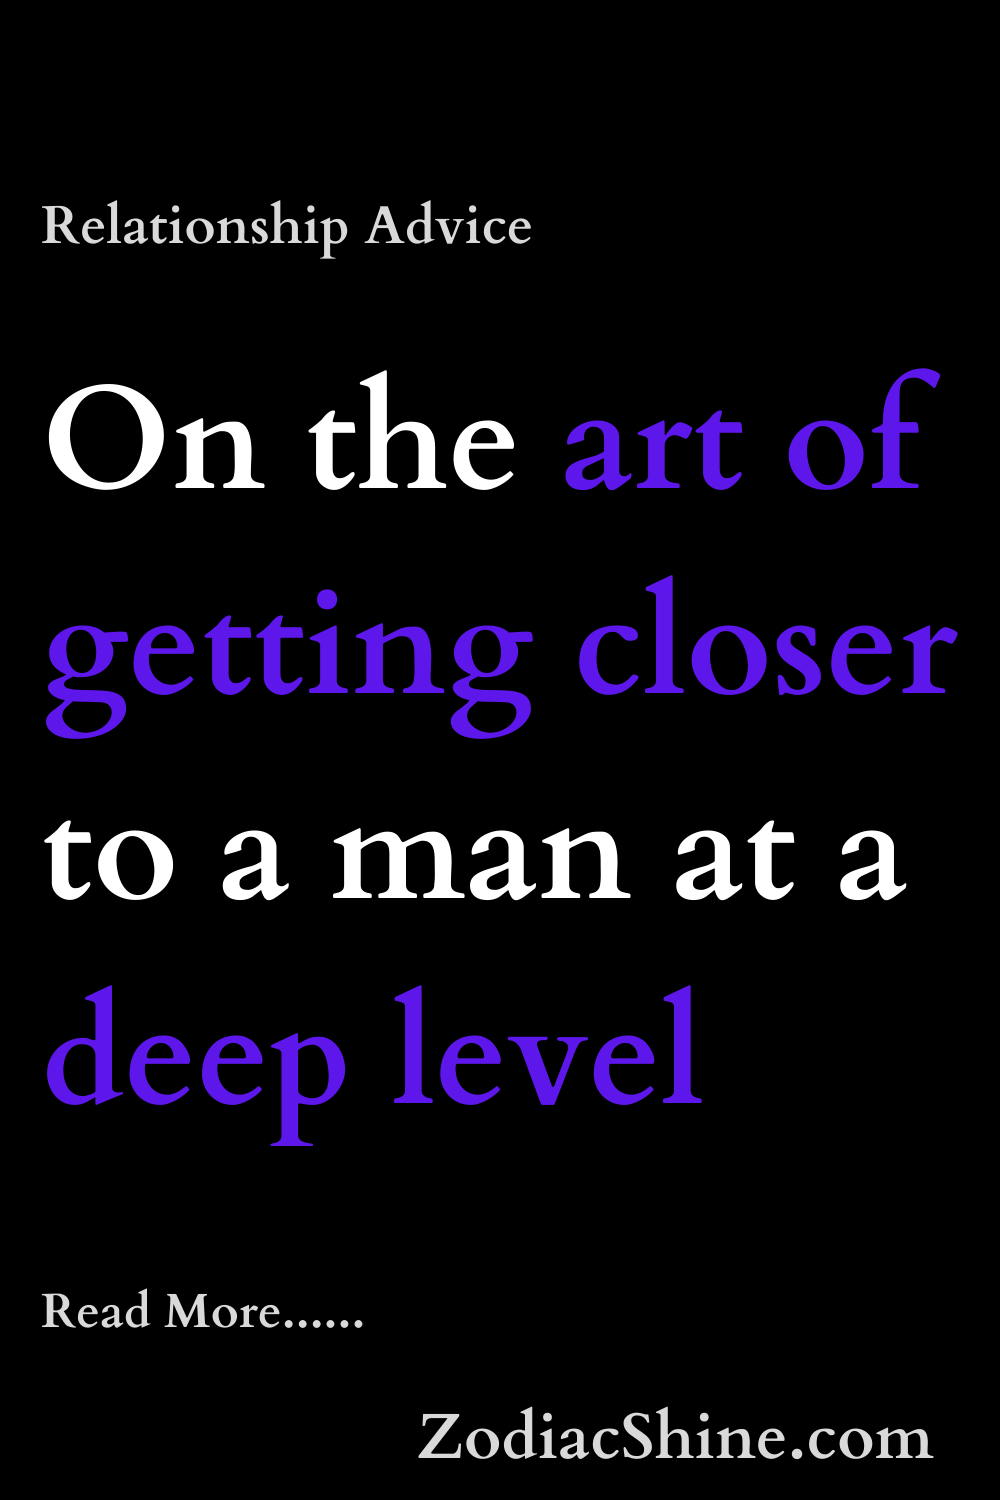 On the art of getting closer to a man at a deep level